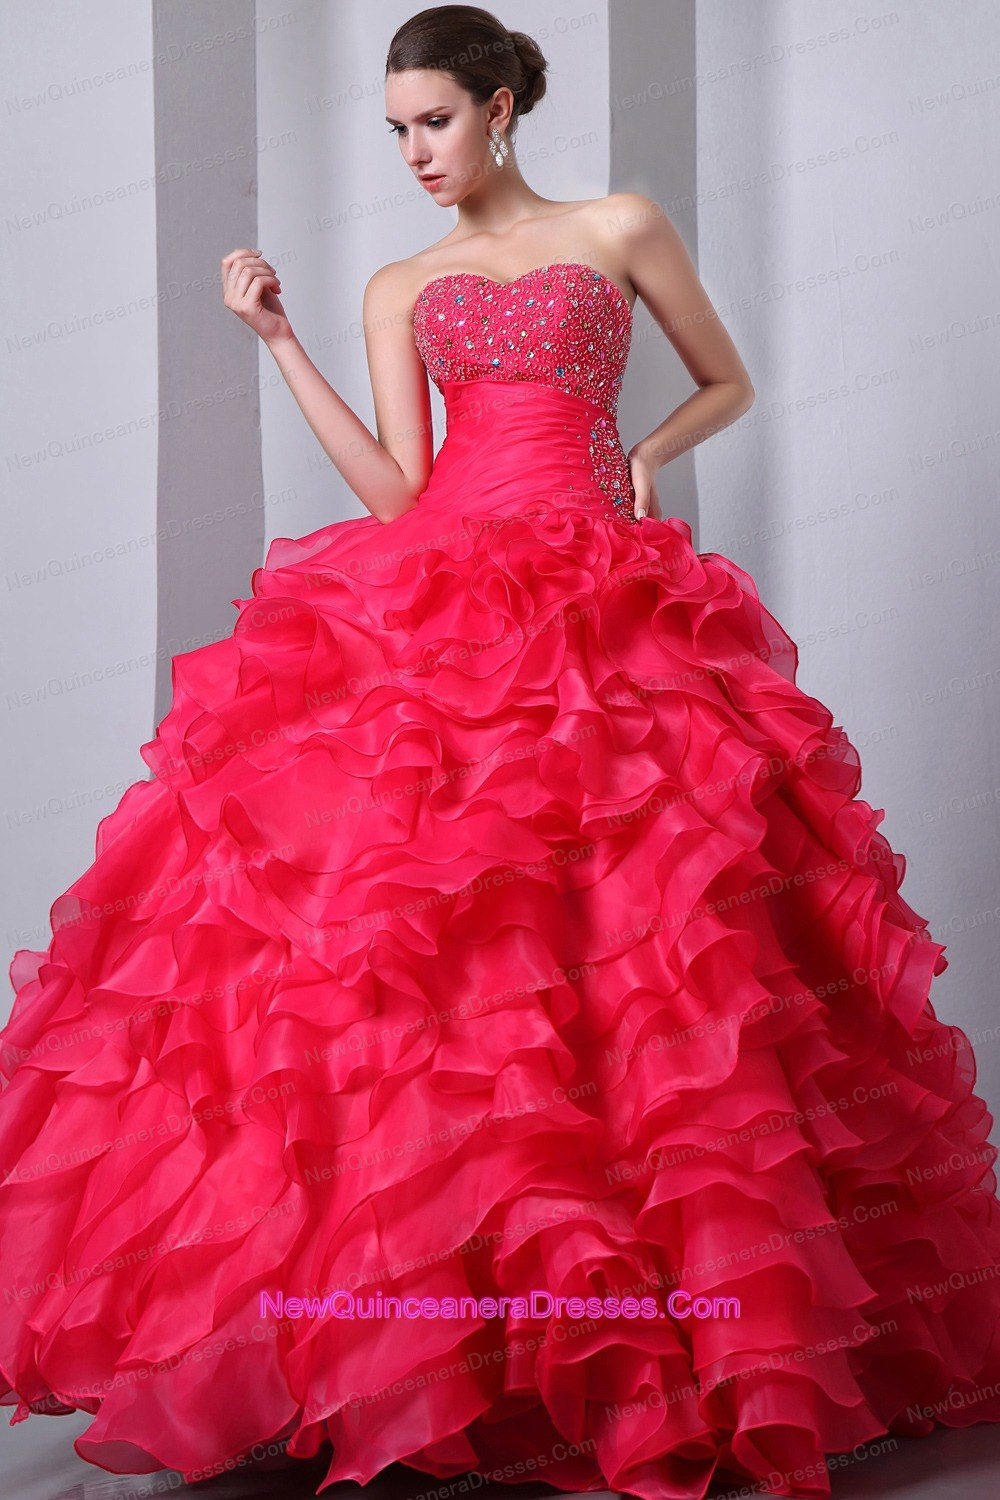 Quinceanera Dresses with Ruffles, Pretty Ruffles Ball Gowns